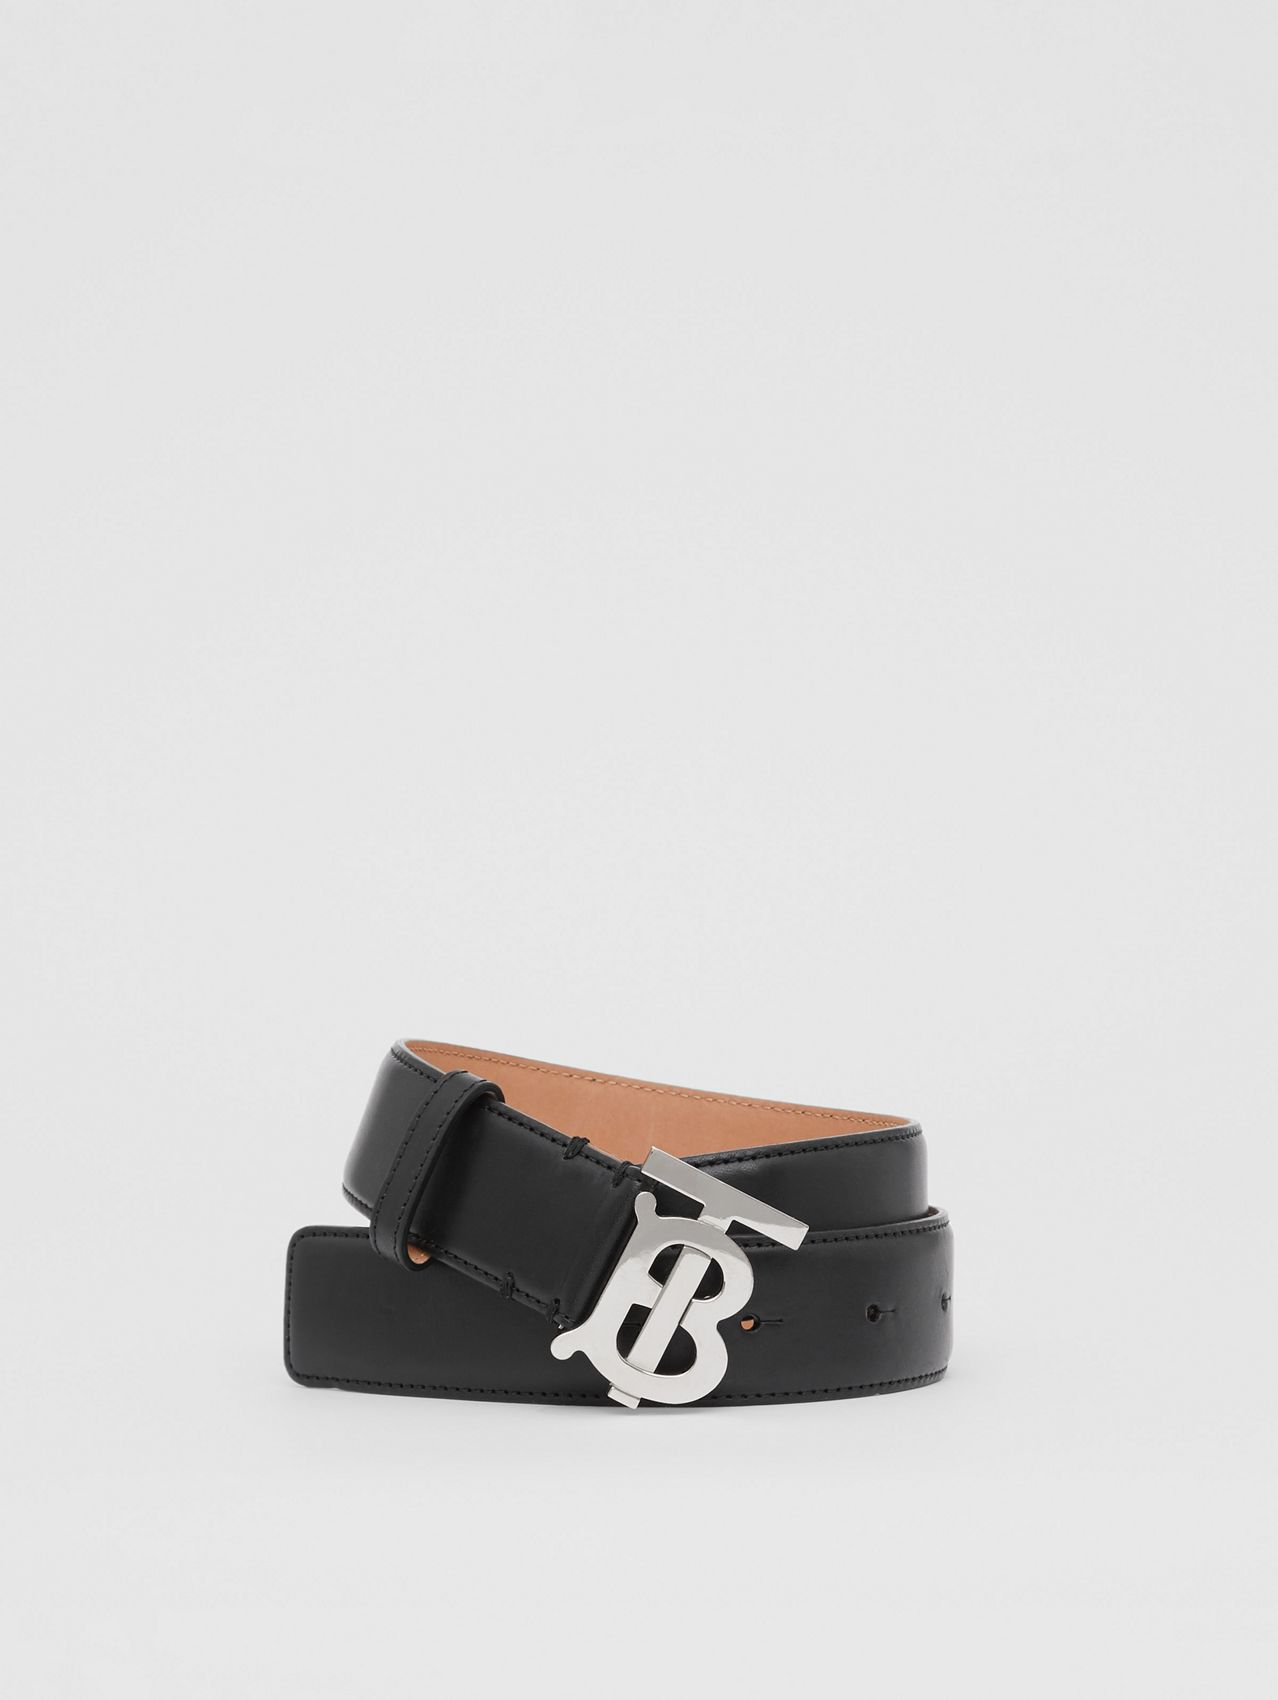 Monogram Motif Leather Belt in Black/palladio